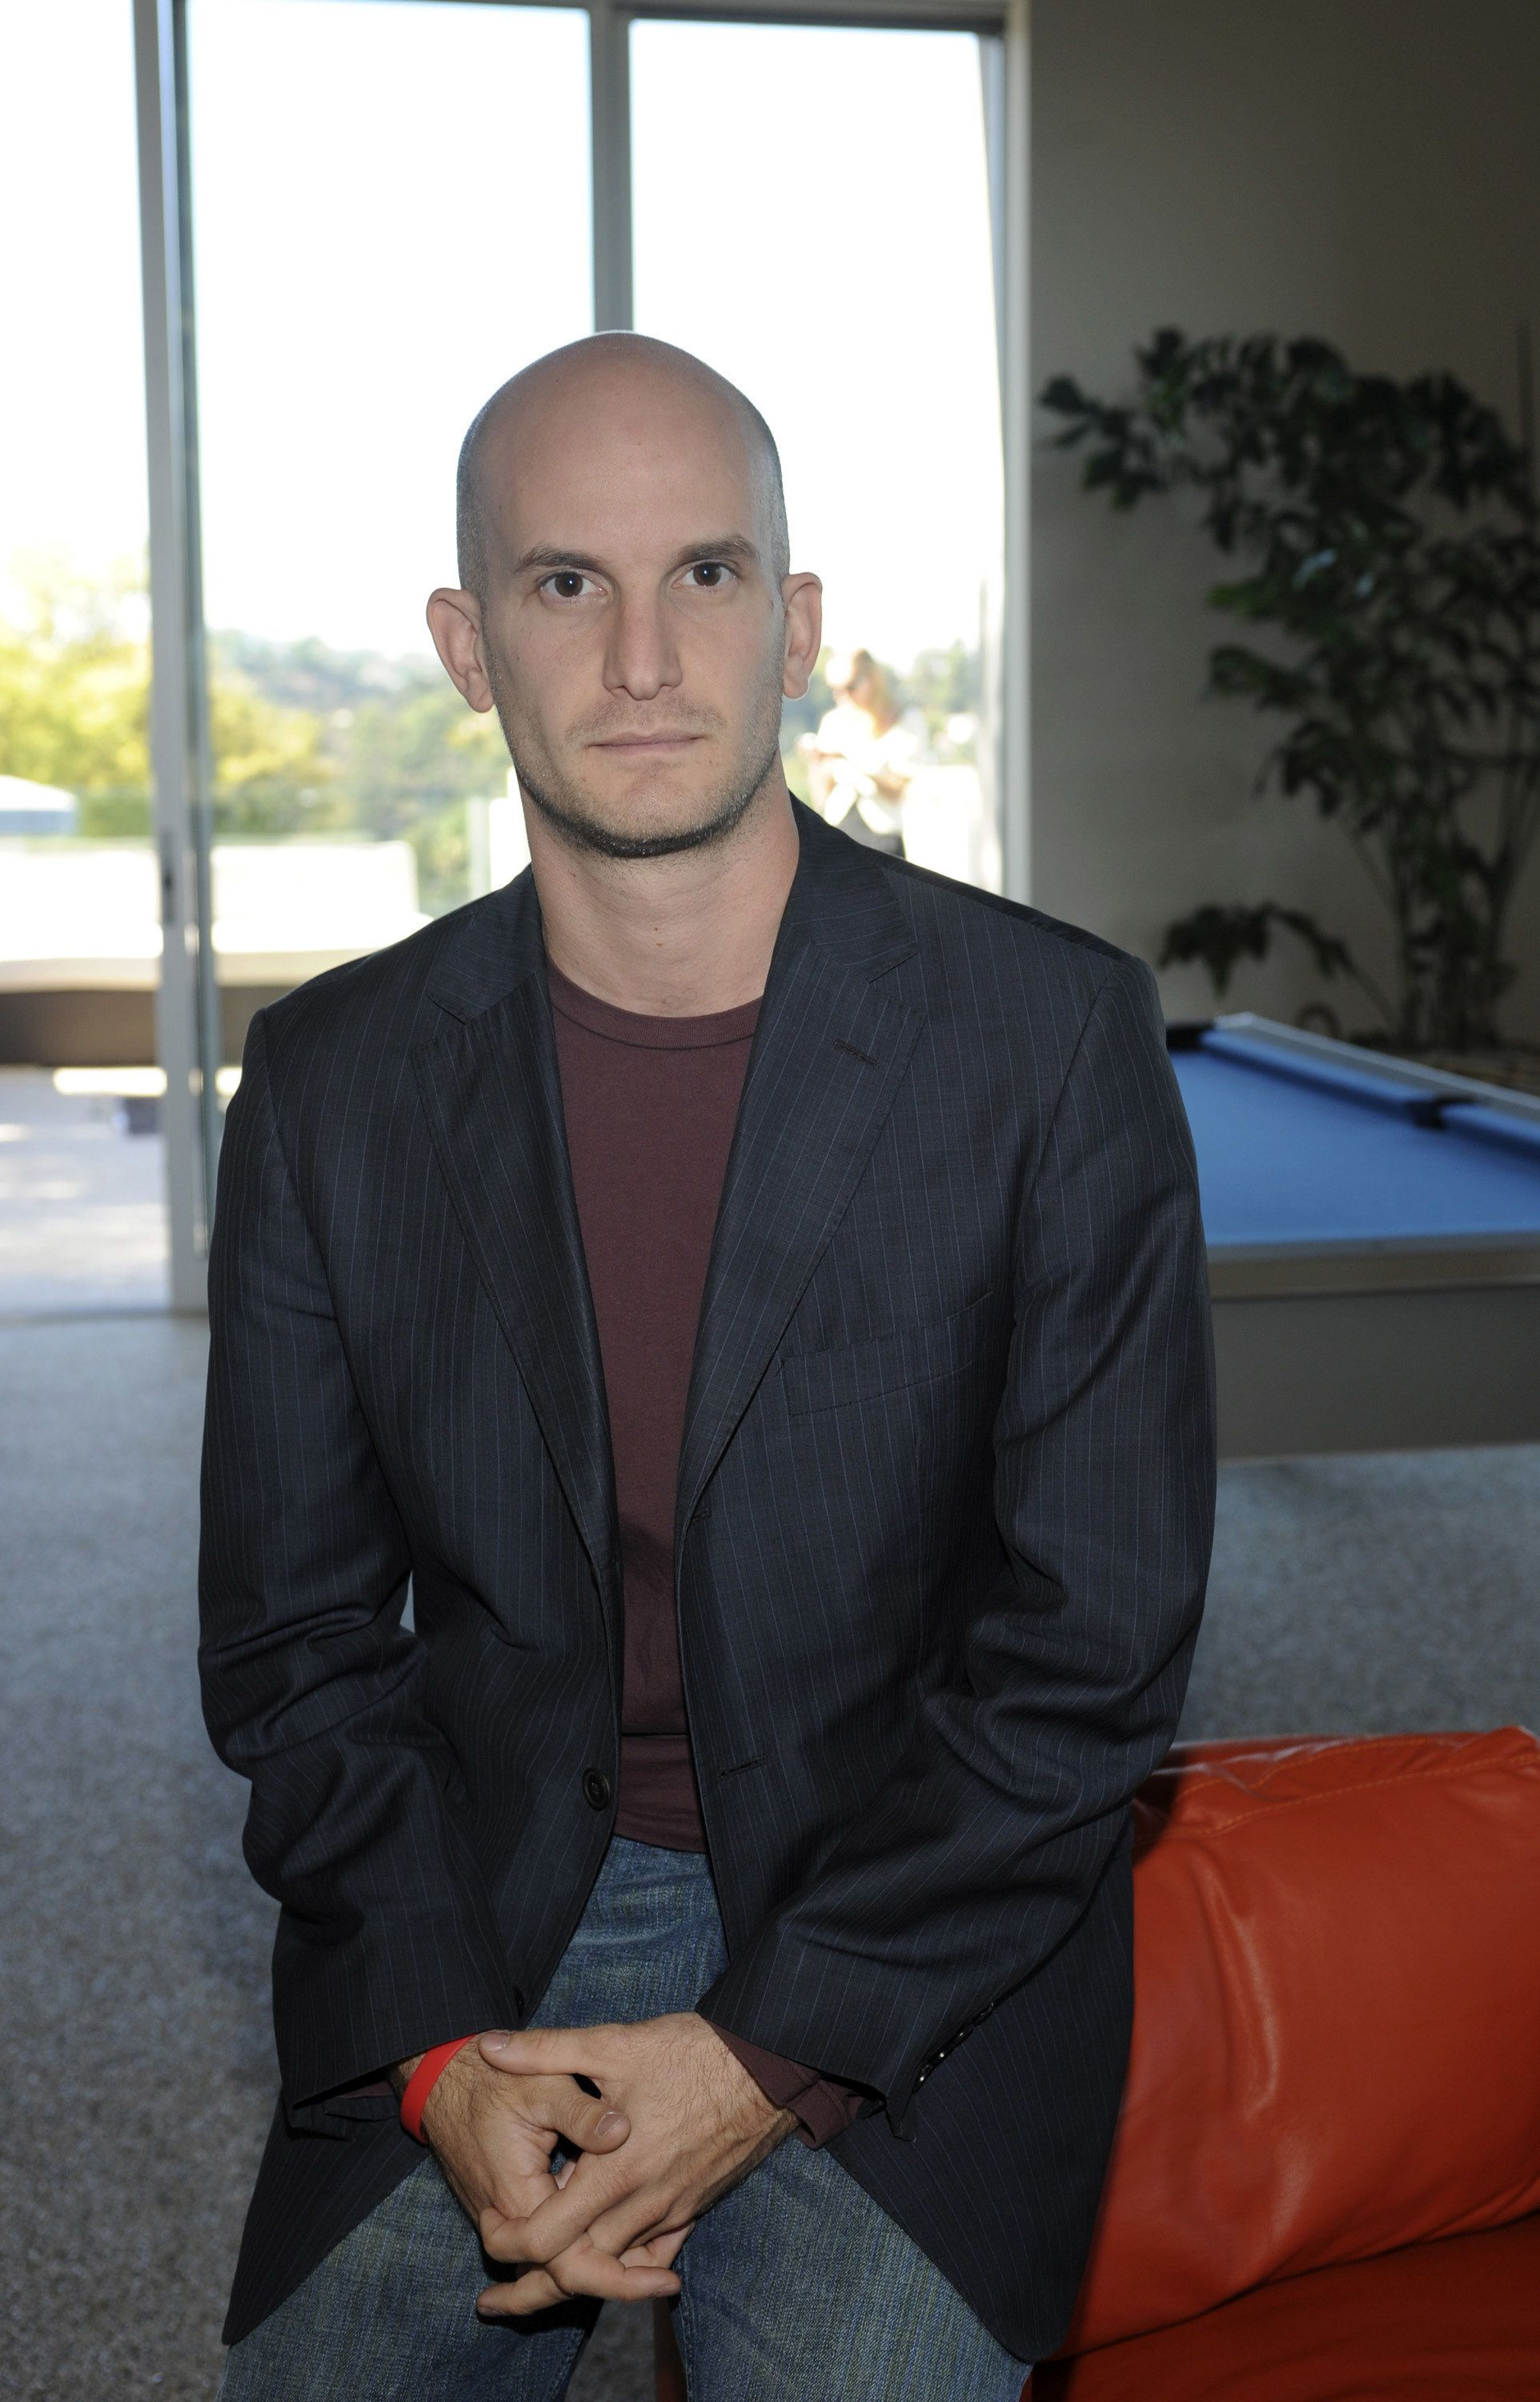 Leon Logothetis attends the launch of PURE at Private Estate on November 6, 2008 in Hollywood, California. (Photo by Stefanie Keenan/WireImage)